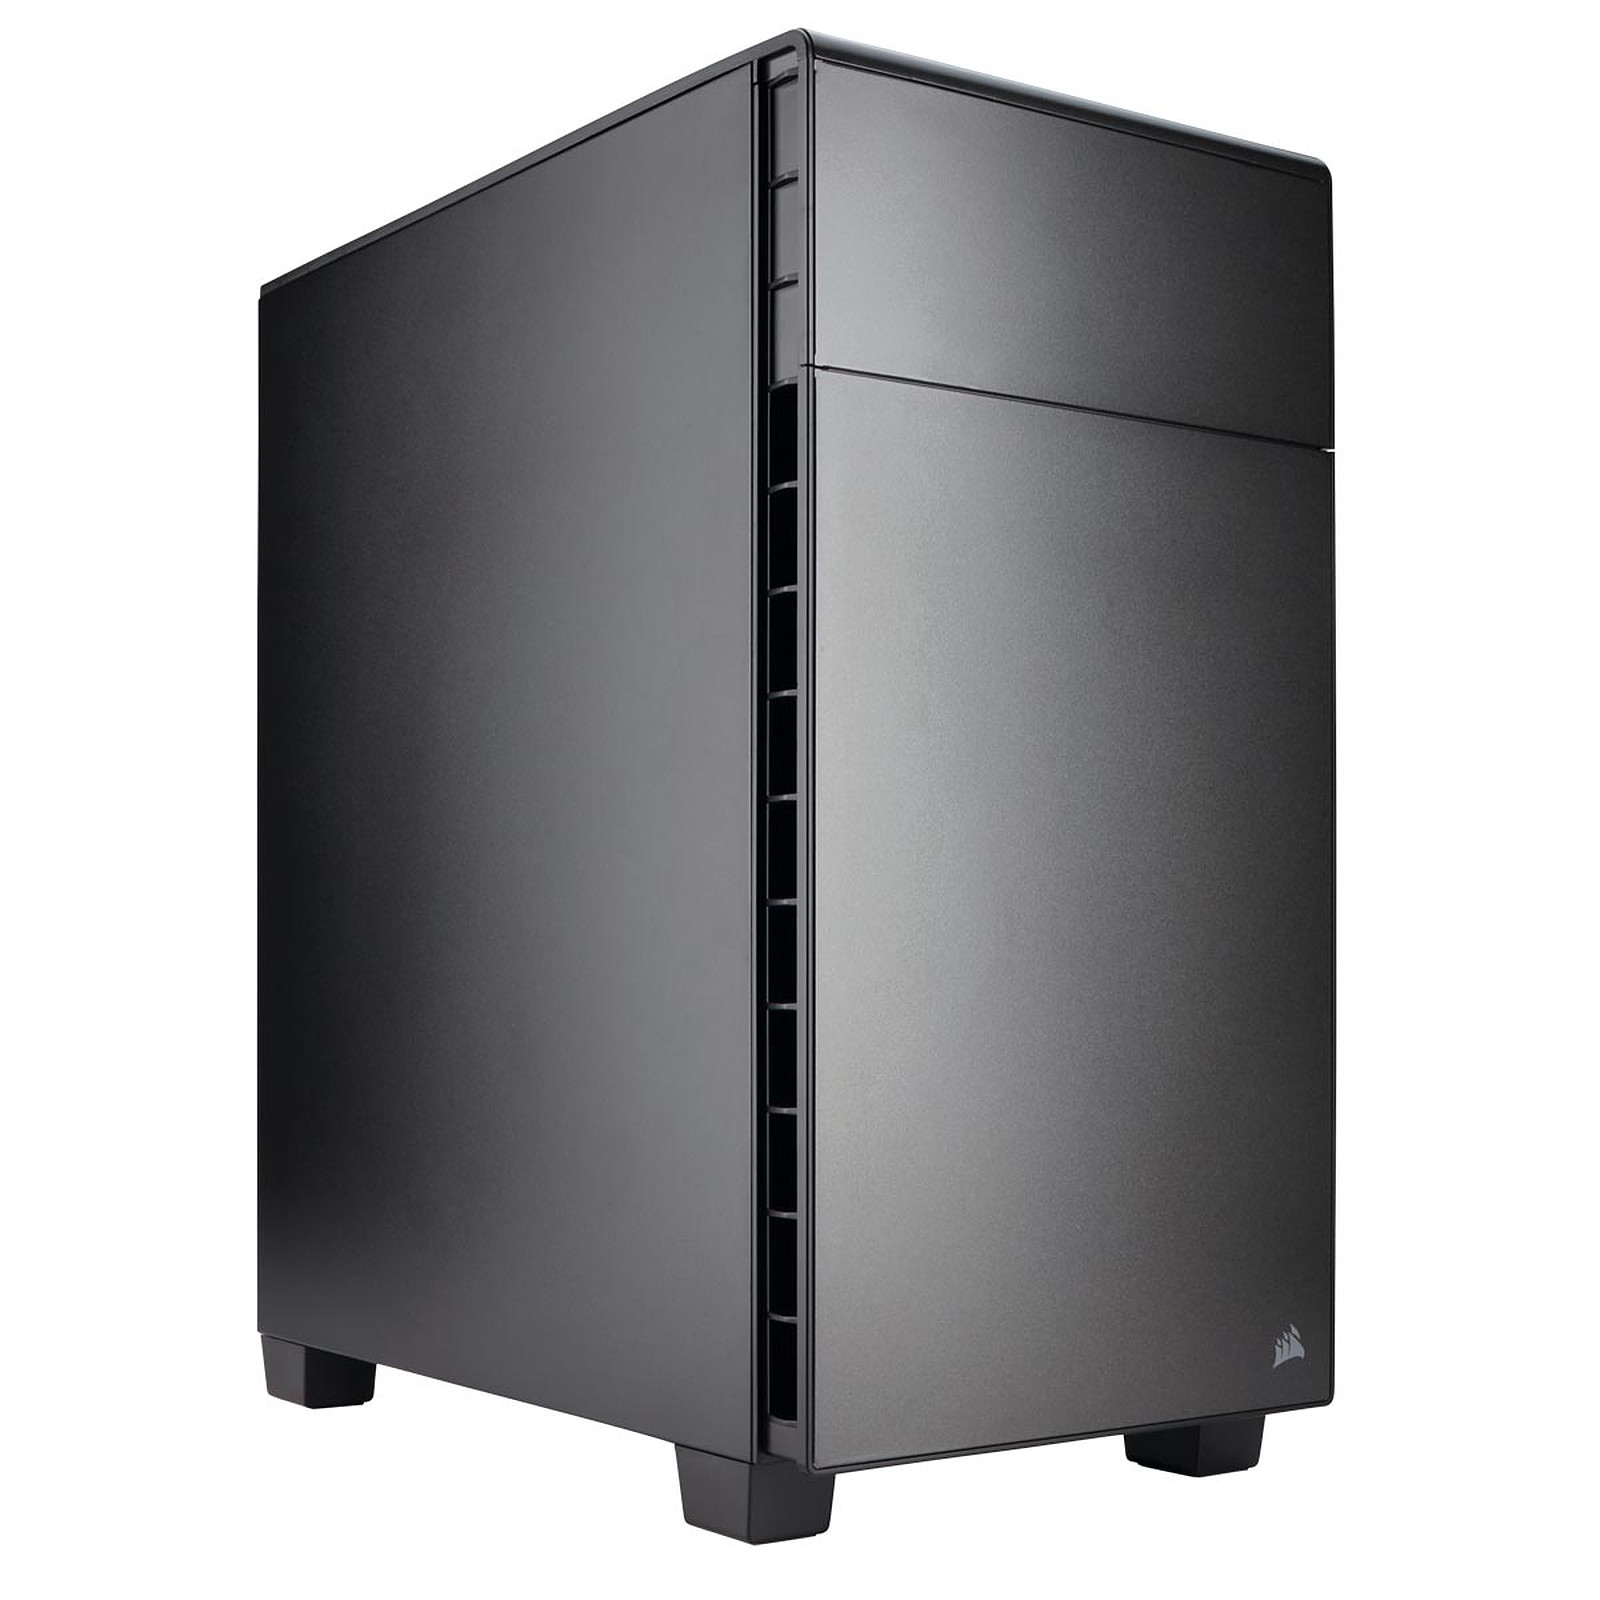 Corsair Carbide Quiet 600Q